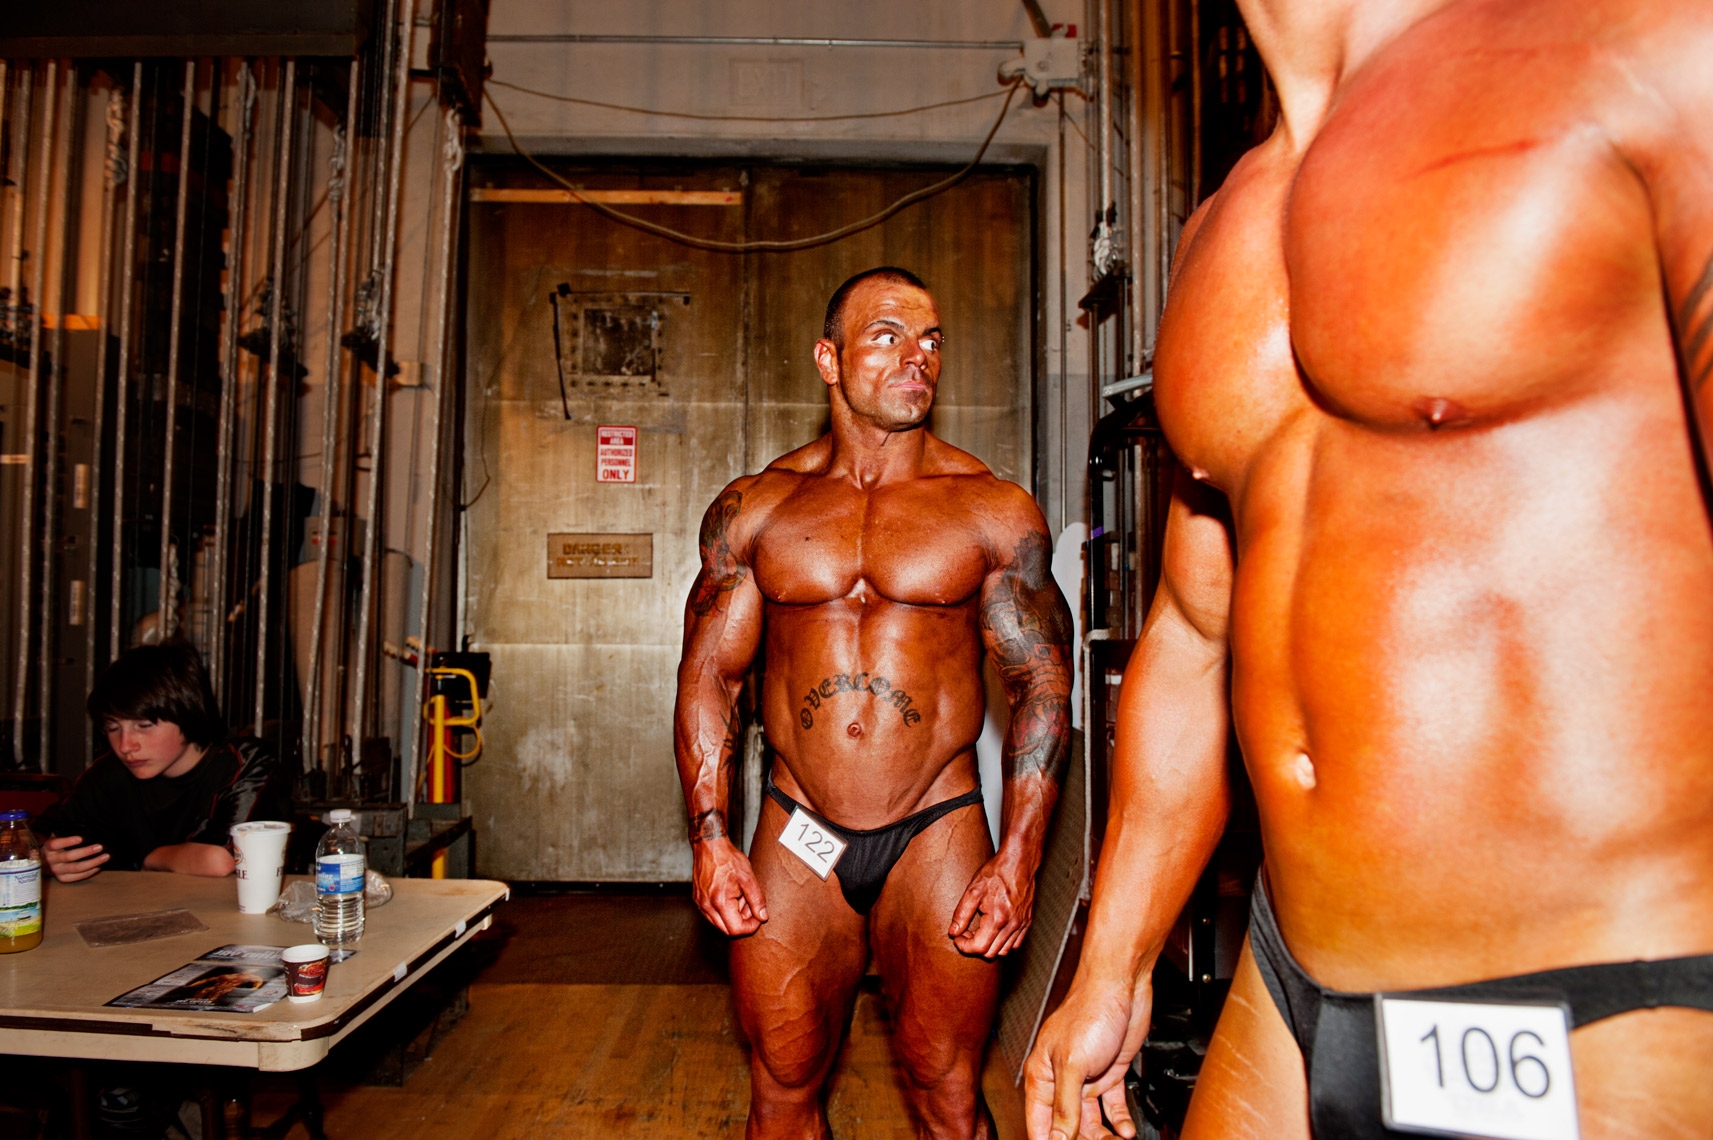 Webb Chappell editorial photography of bodybuilders